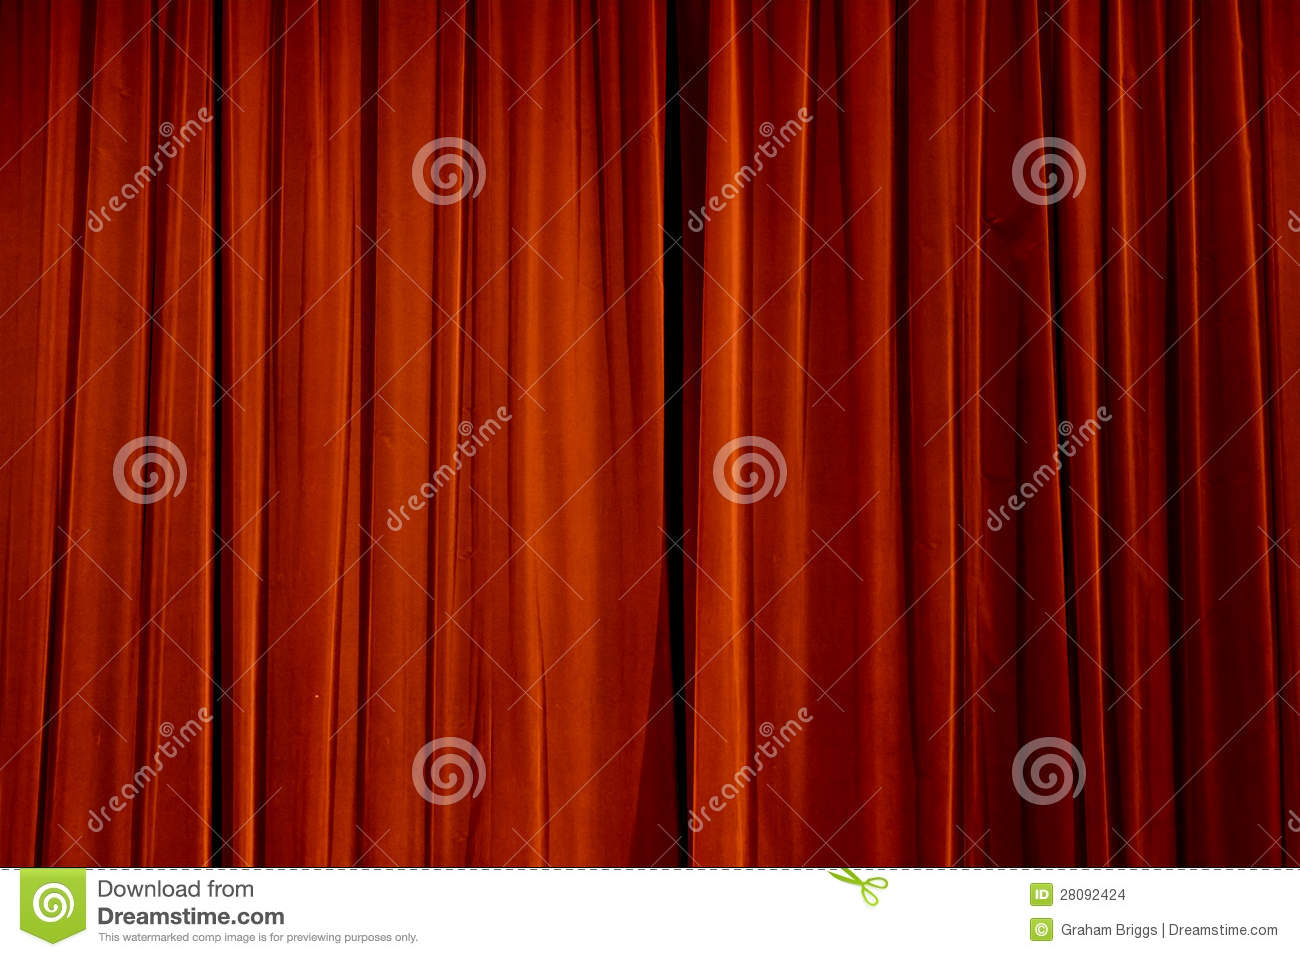 Theatre curtains clipart theater curtain clipart clipart kid - Theater Curtain Stock Images Image 28092424